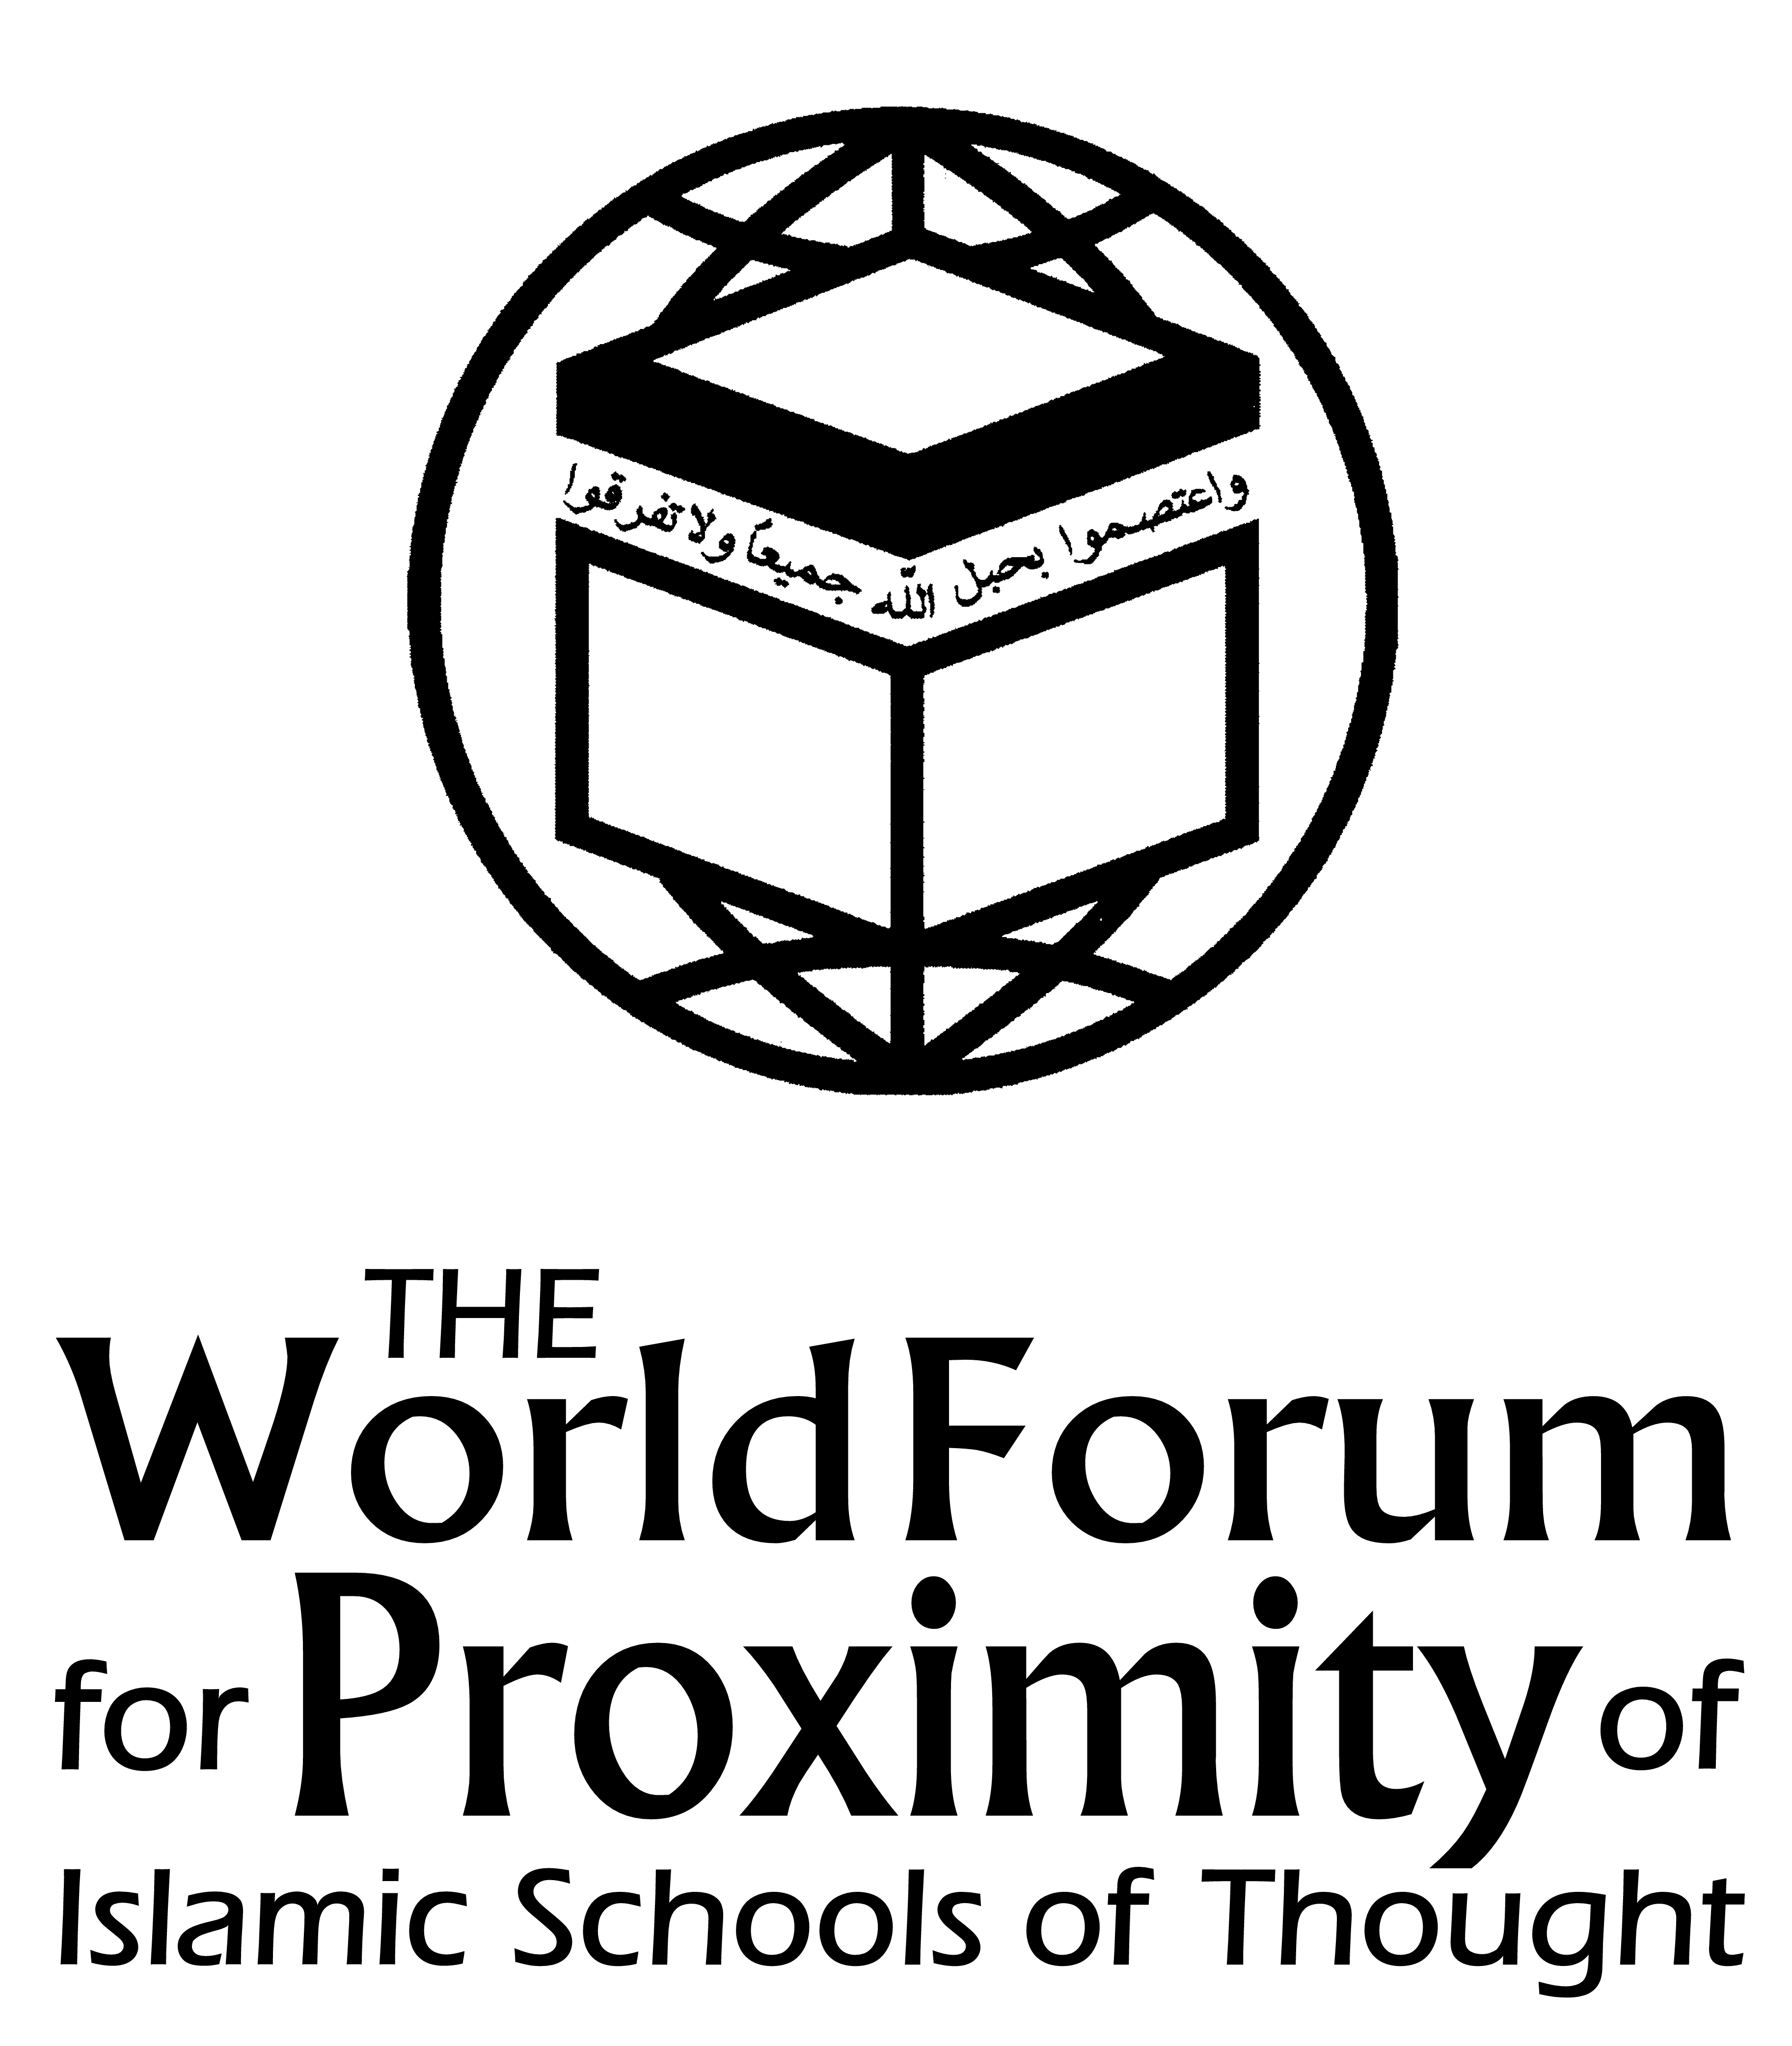 The World Forum for Proximity of Islamic Schools of Thought